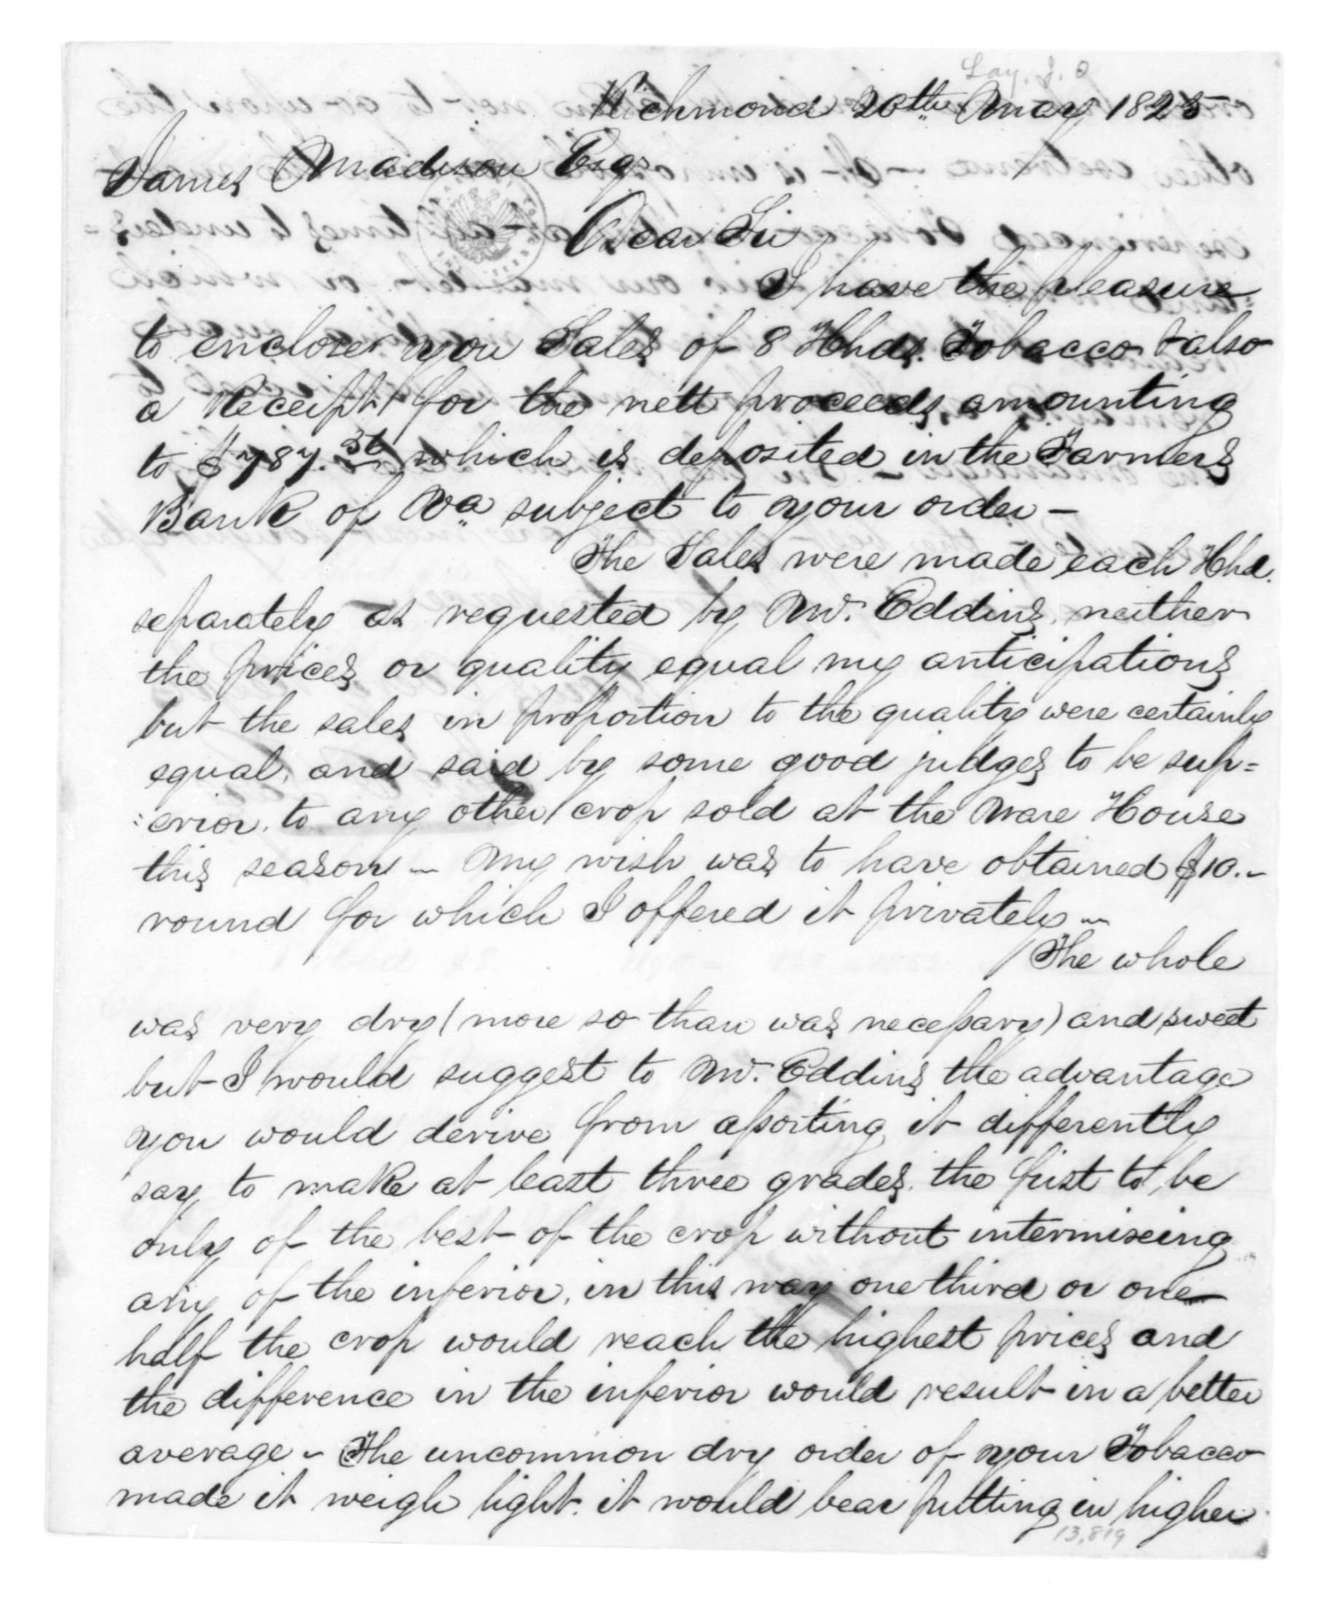 John Olmsted Lay to James Madison, May 20, 1825. Includes account of tobacco sales.